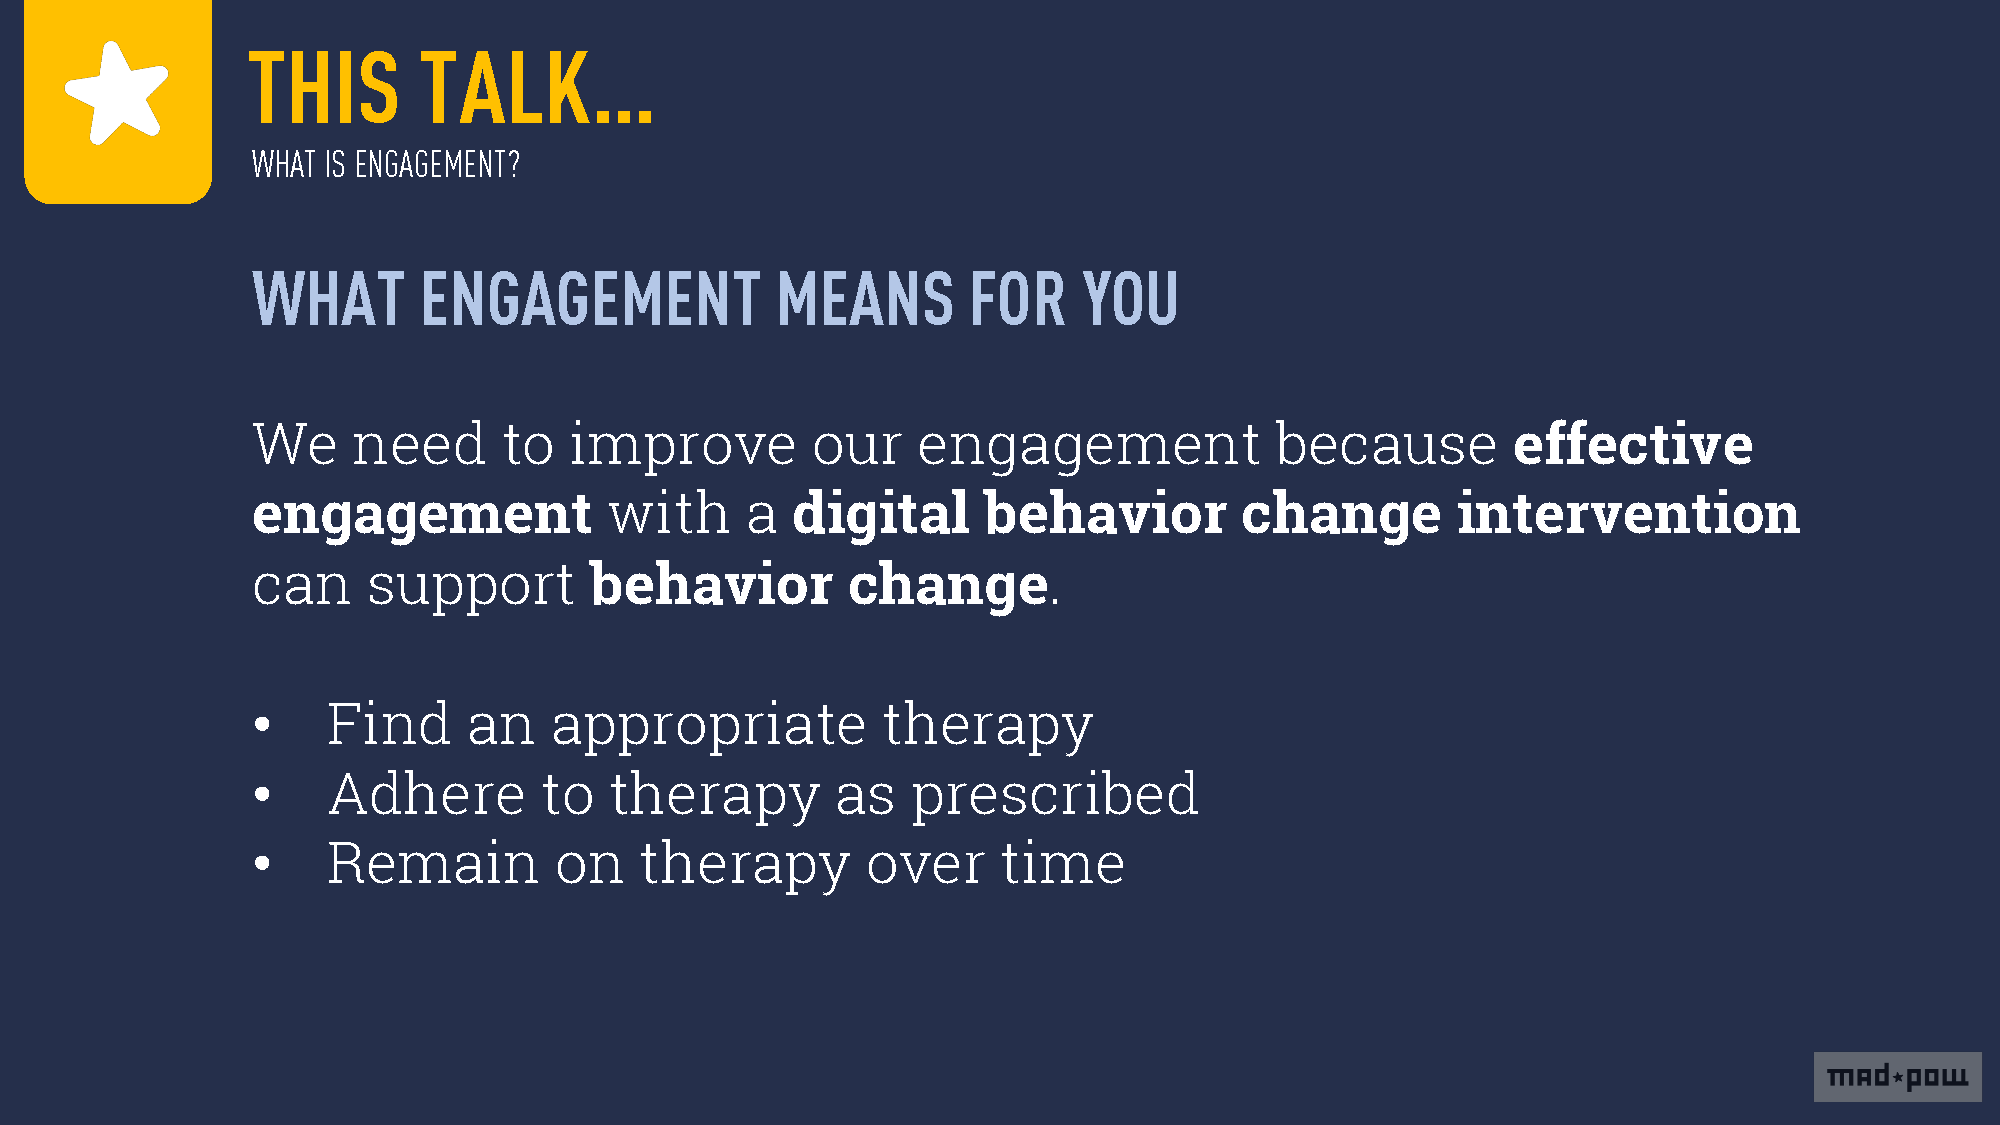 Digital-Engagement-Webinar-PharmaVoice_02.26.19_Page_09